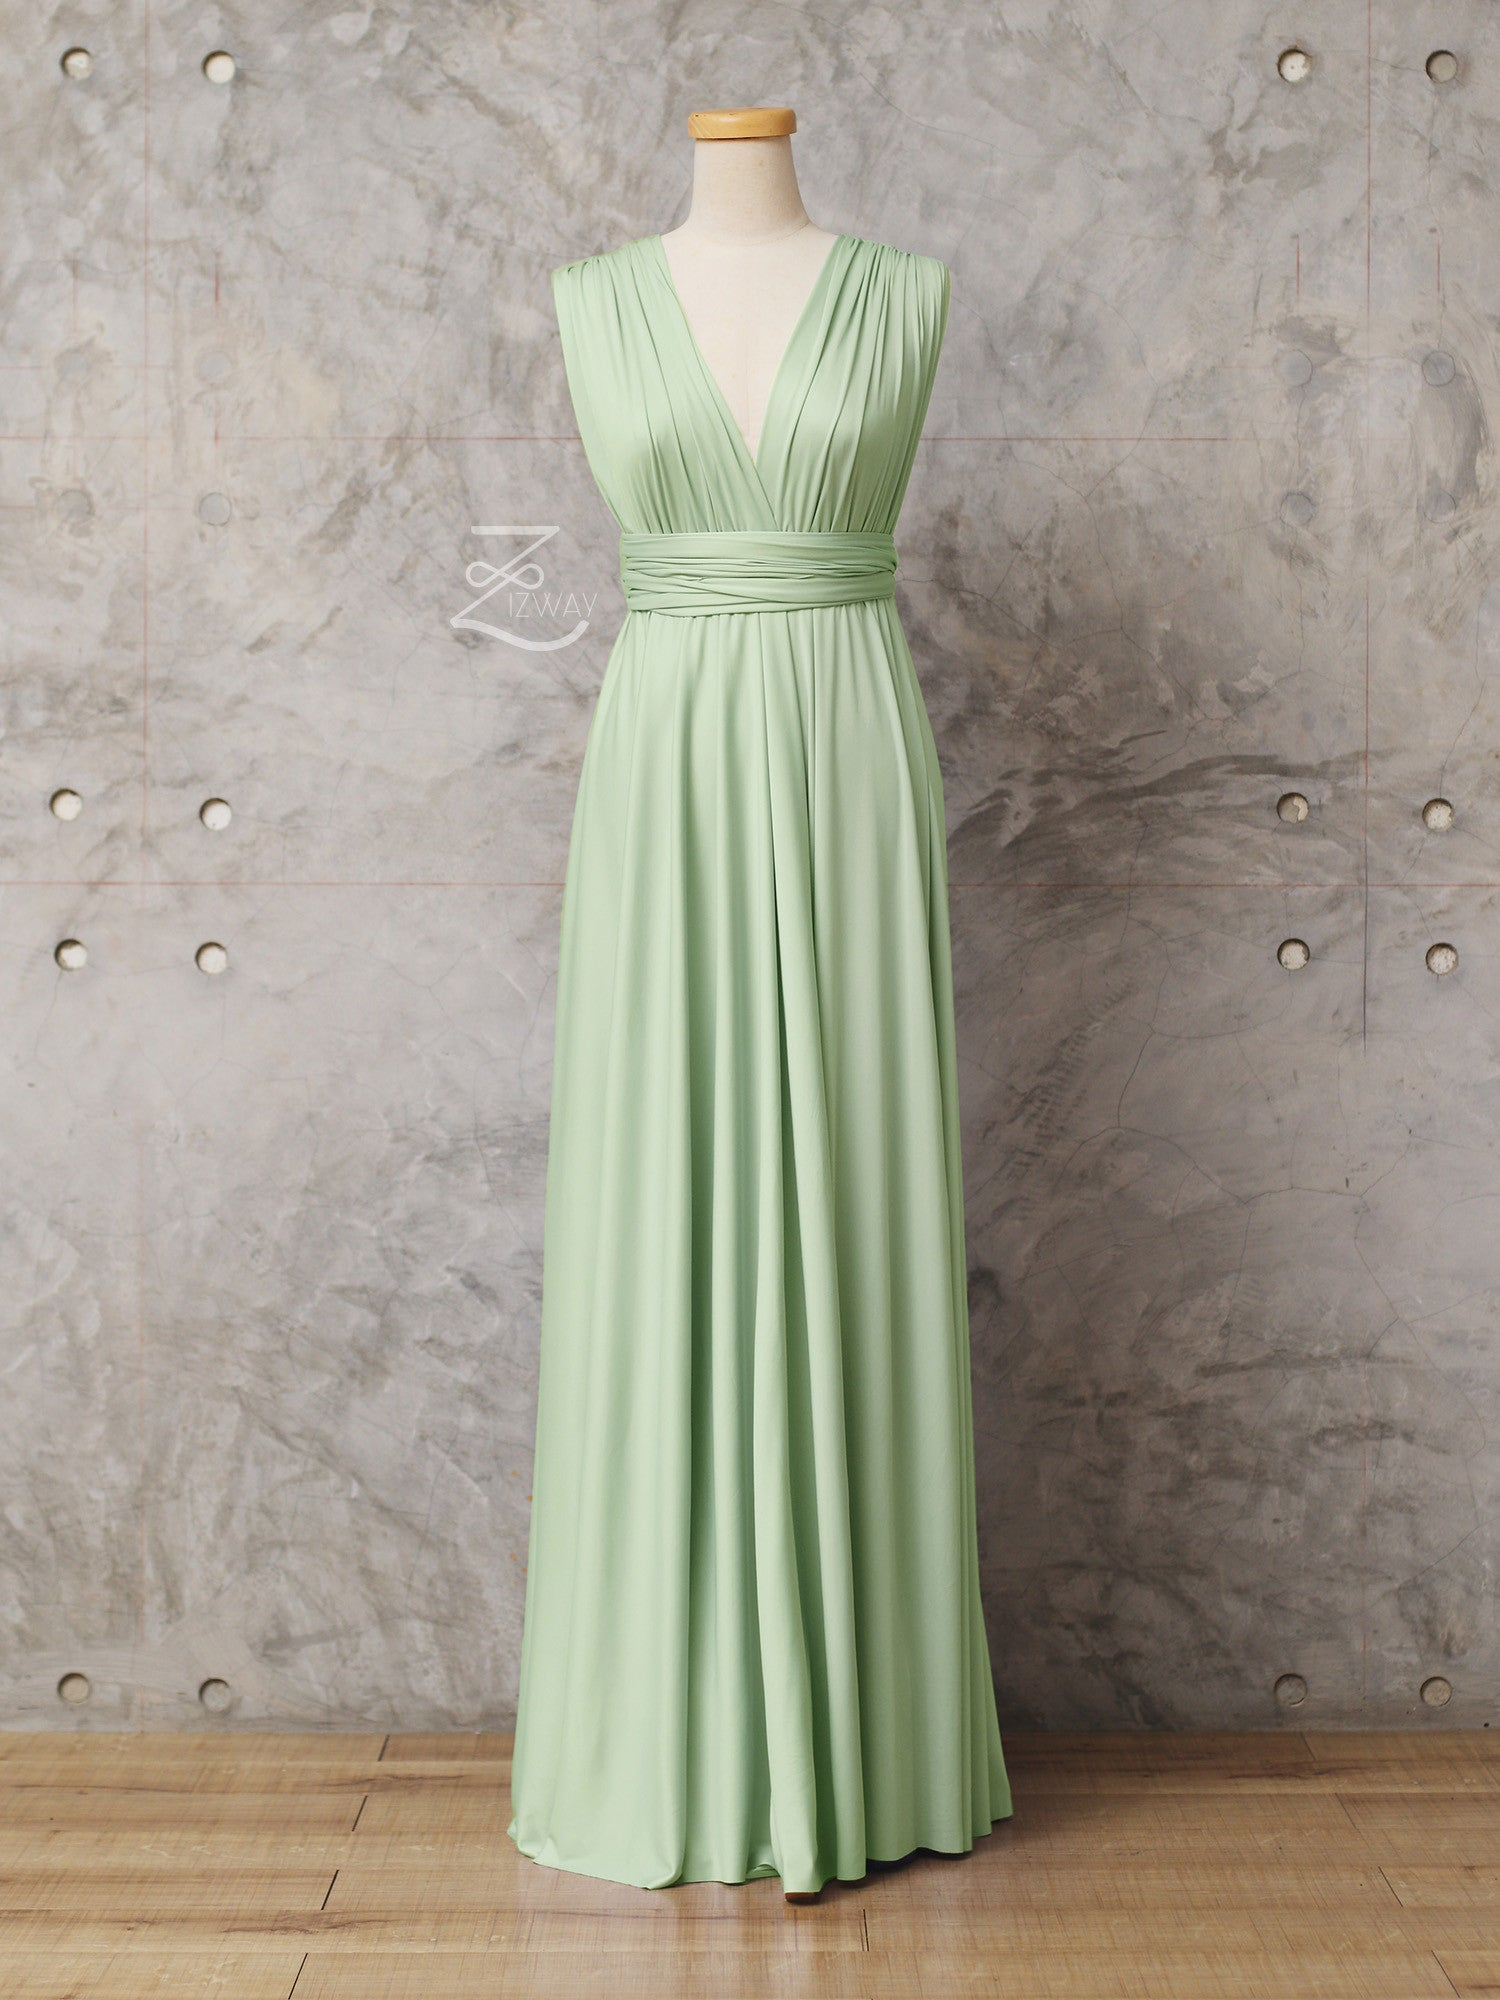 Zizway Pastel Green Convertible Dress Floor Length